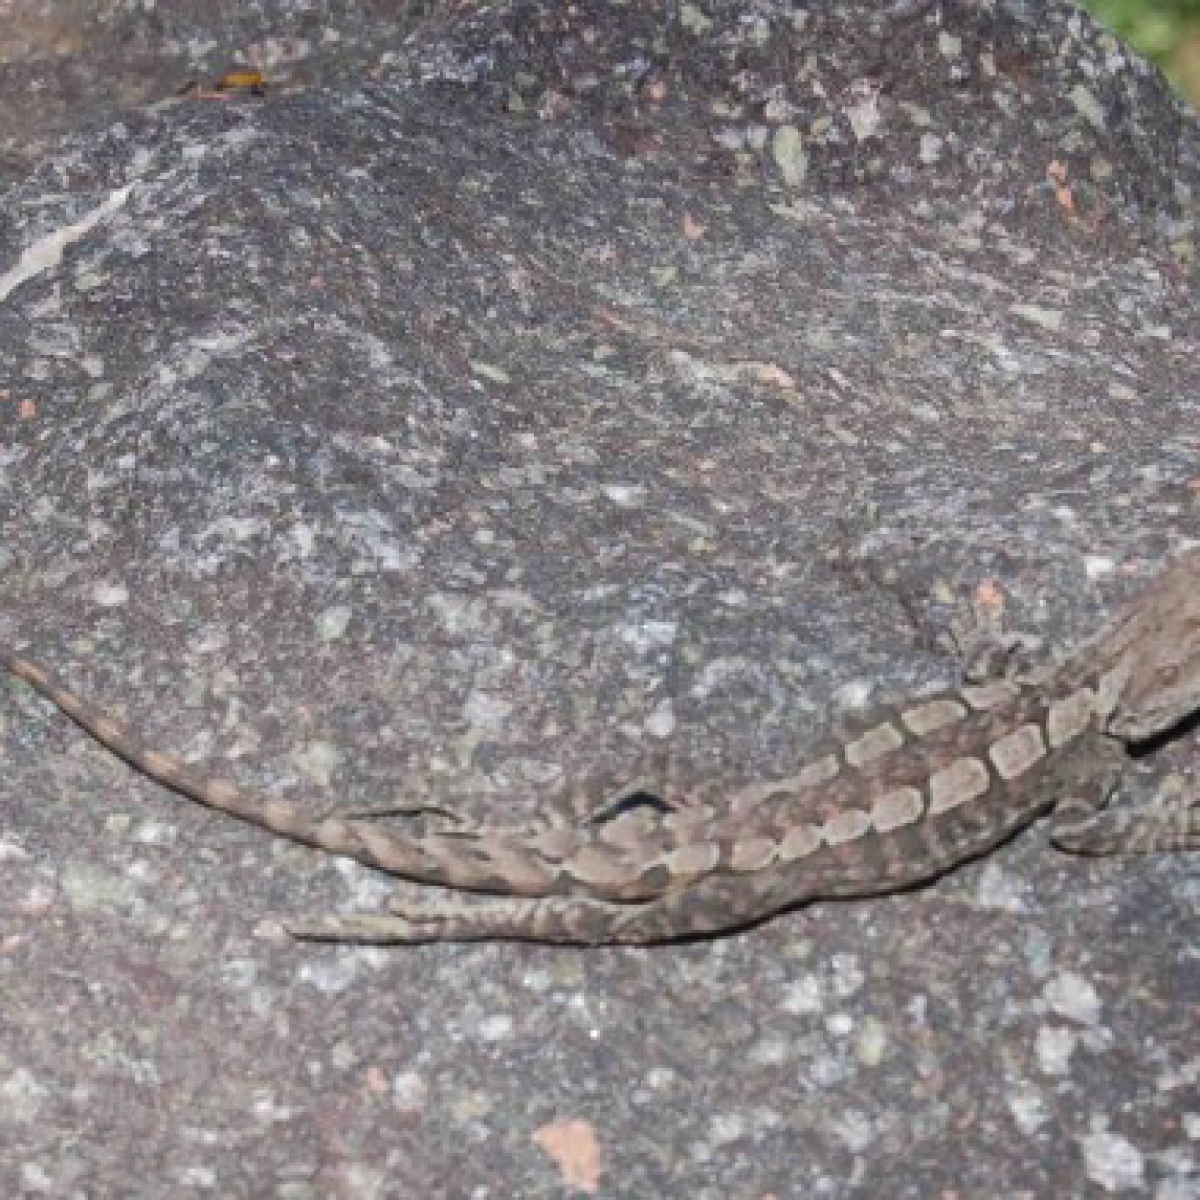 Tree Dragon or Jacky Lizard (Amphibolurus muricatus)